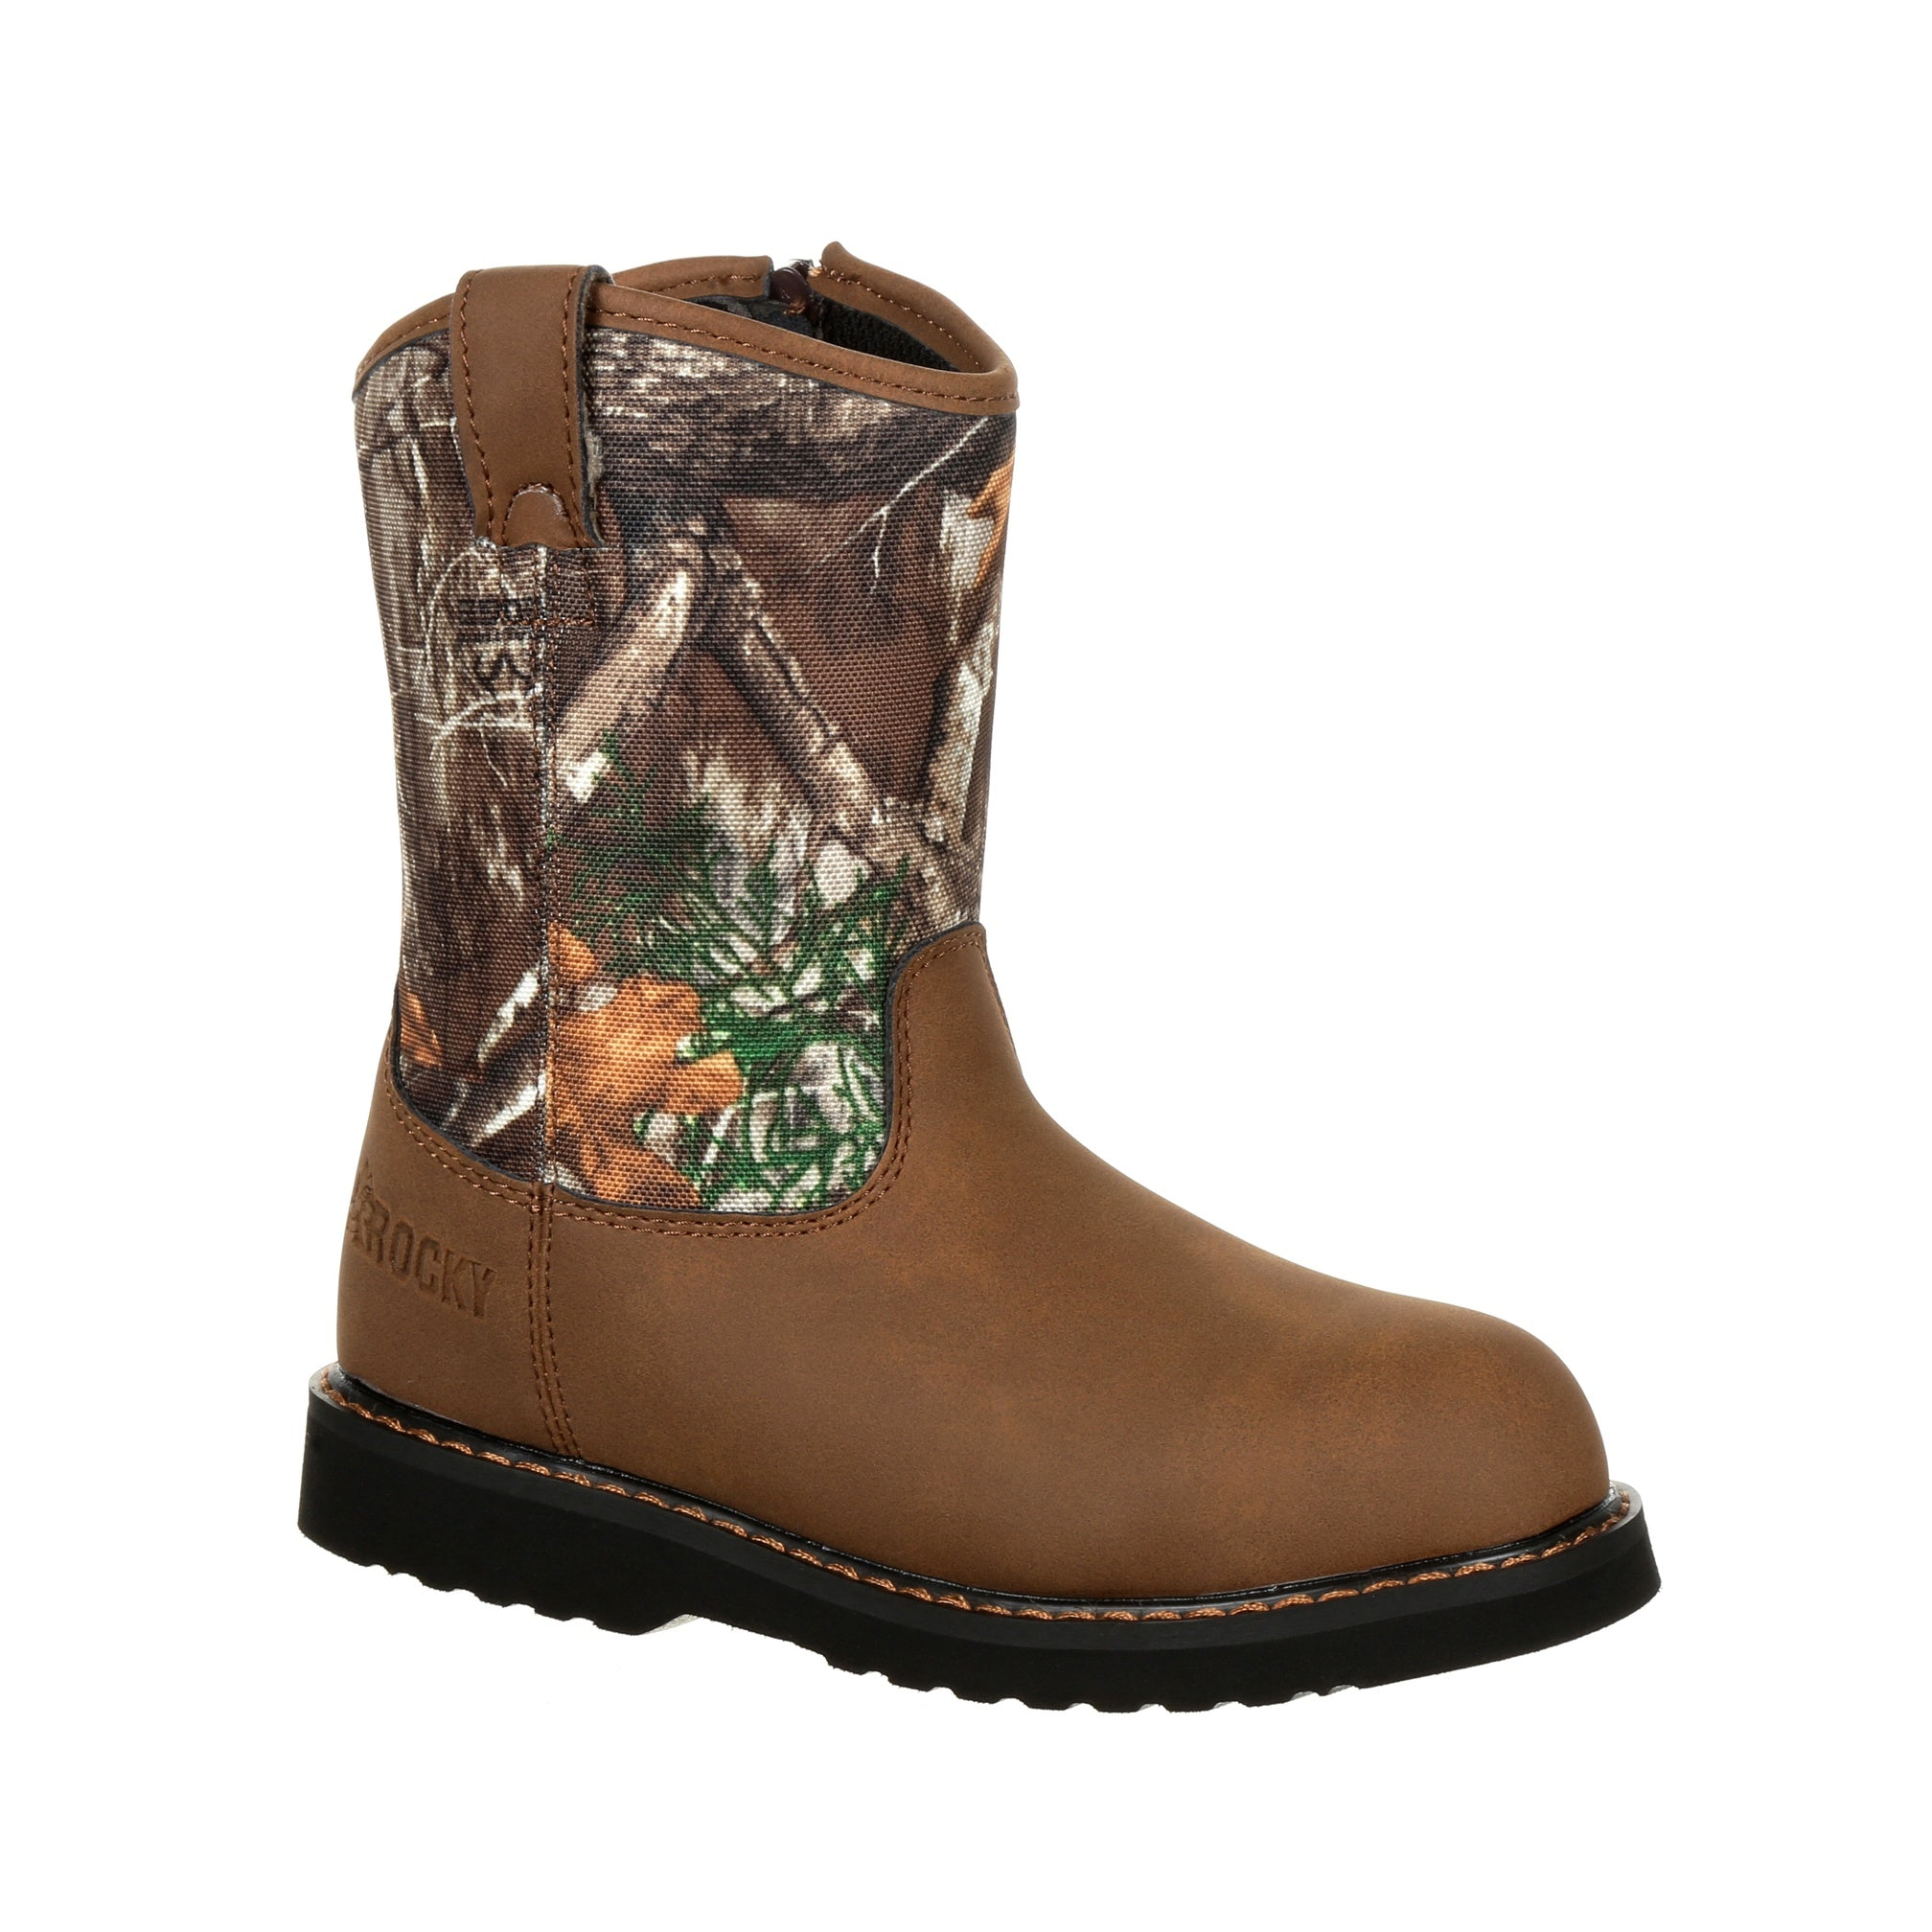 8b4316789c4 Rocky Kids Realtree Edge Leather Lil Ropers Outdoor Hunting Boots ...